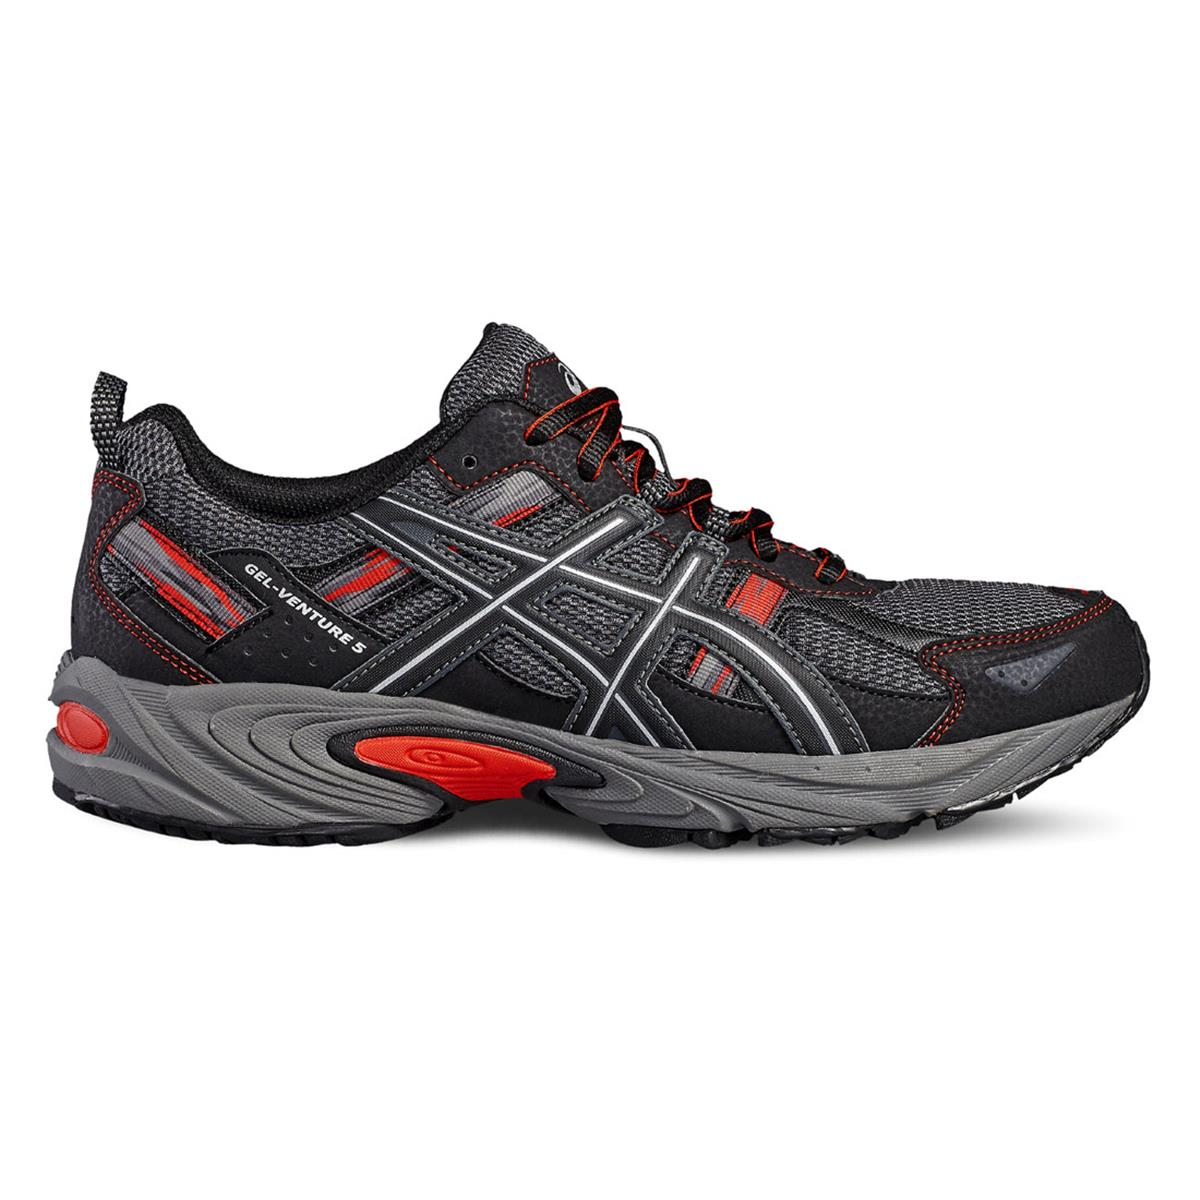 asics venture 5 mens trail shoes by directrunning